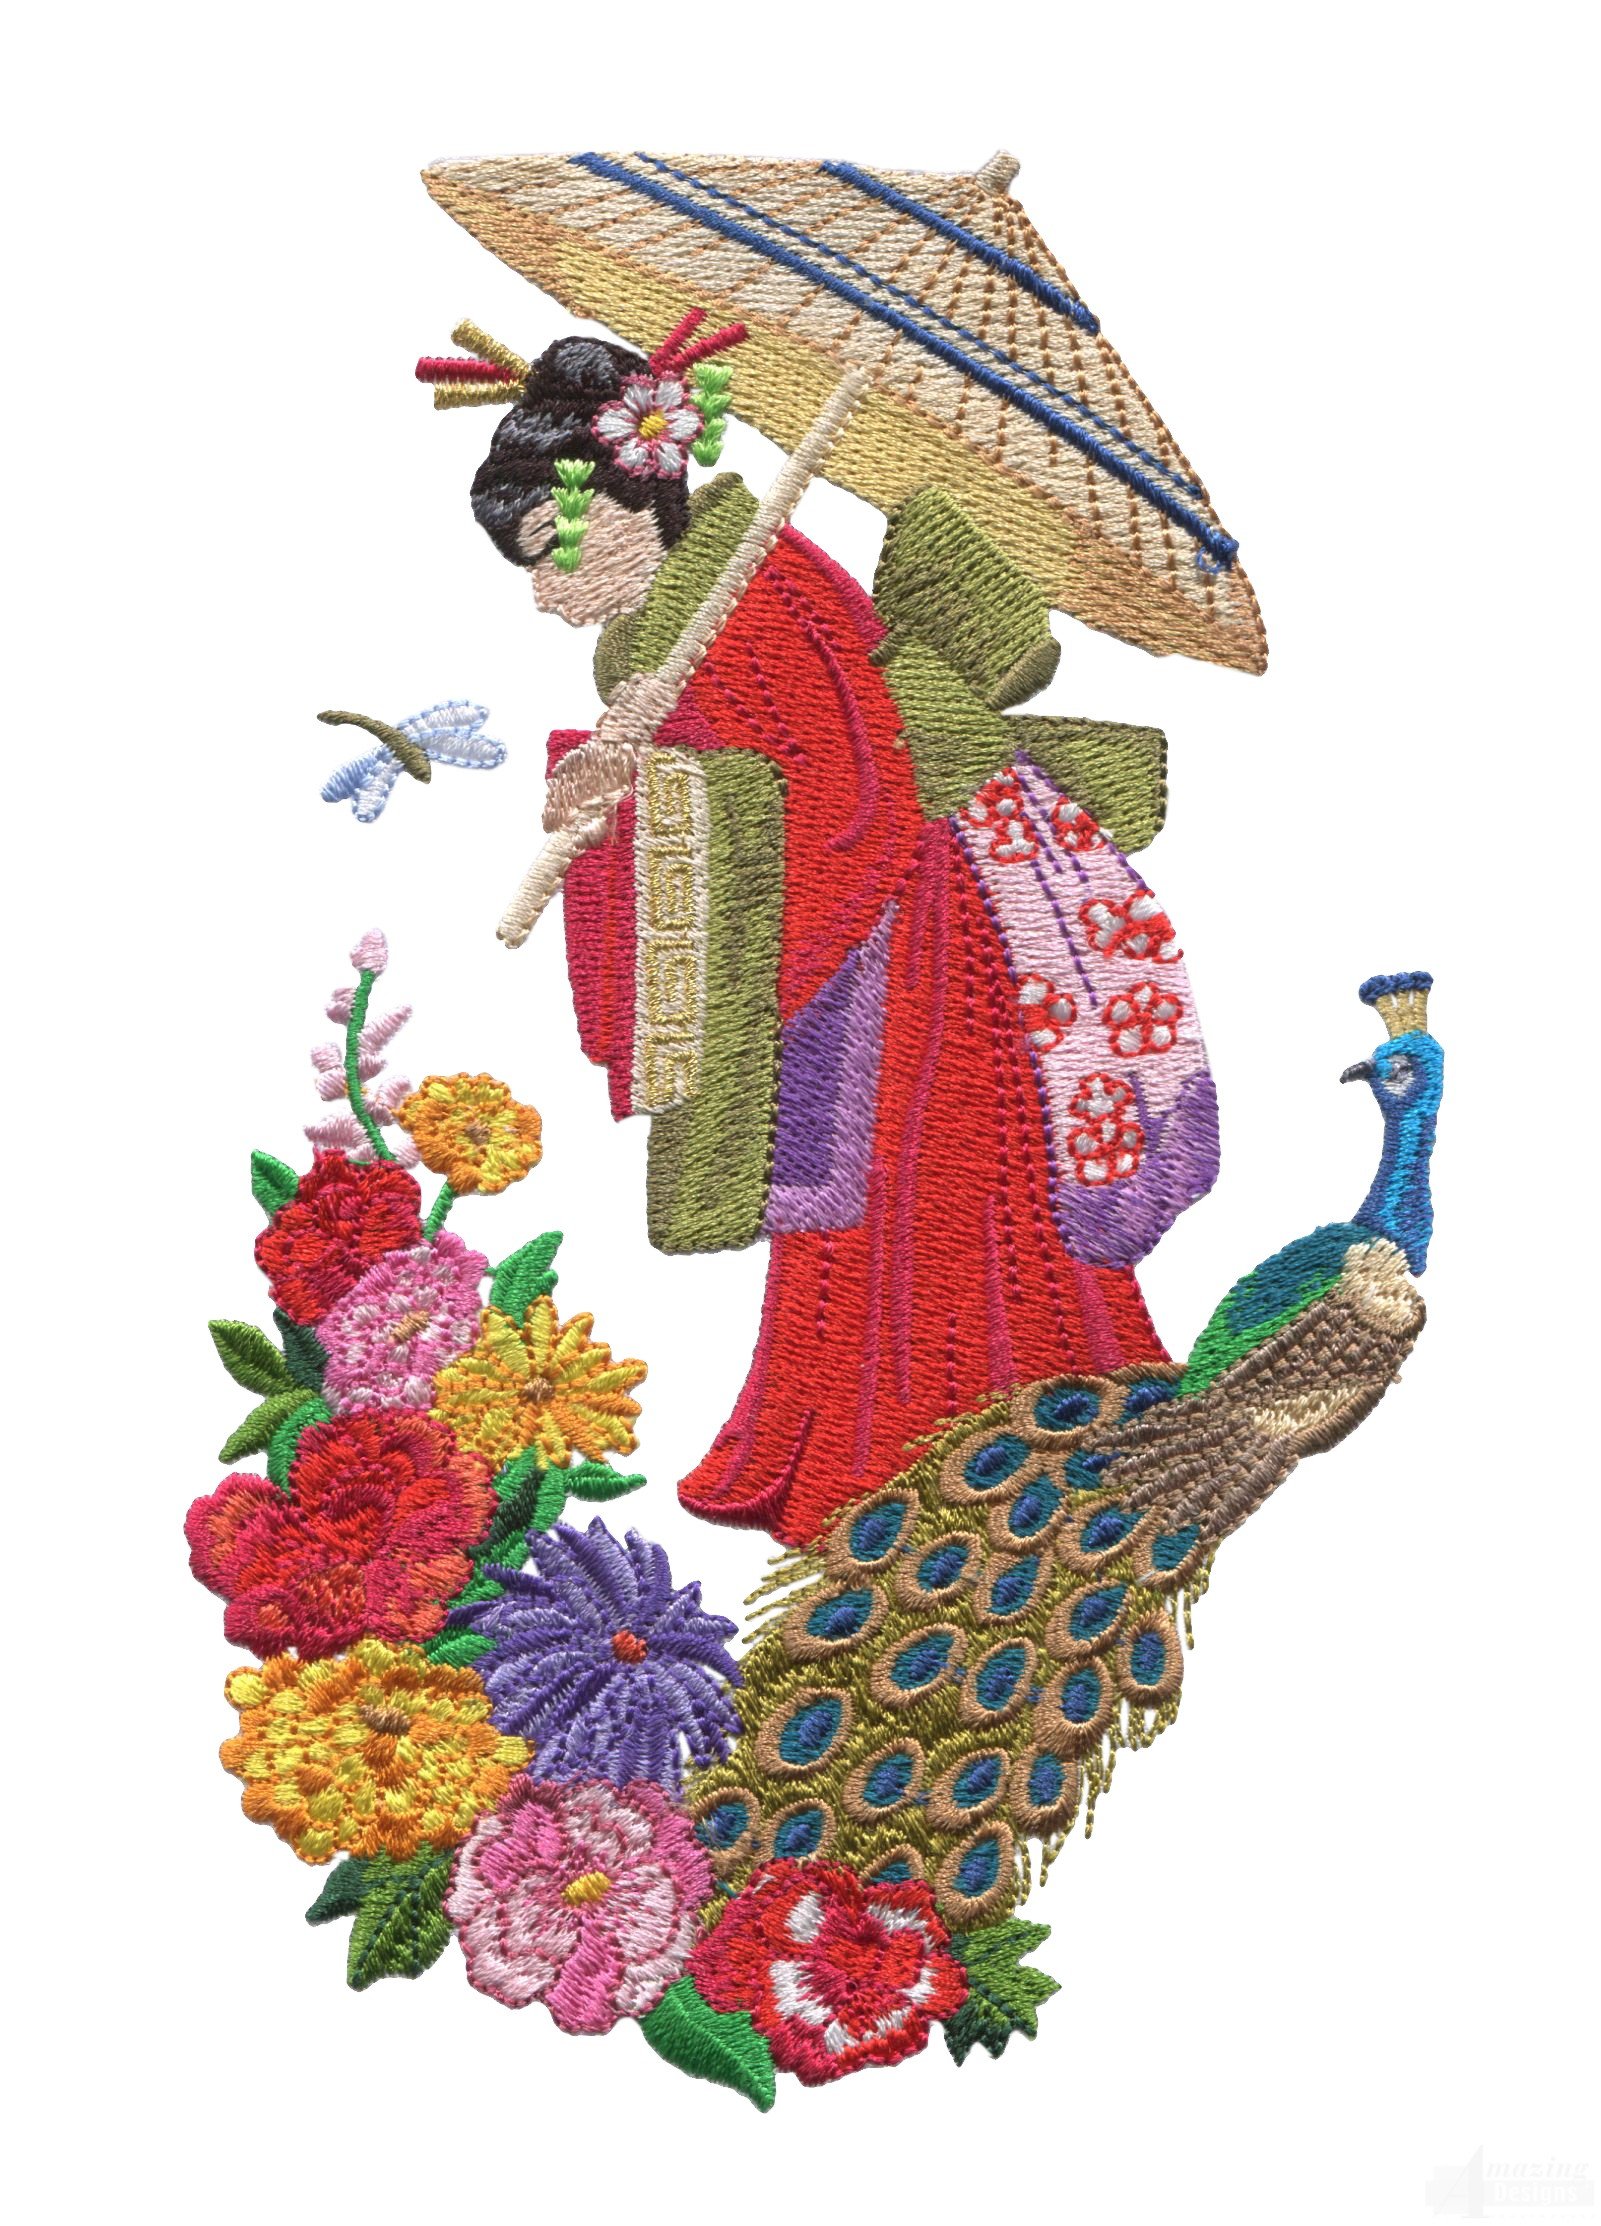 Swngg102 a geishas garden embroidery design for Garden embroidery designs free